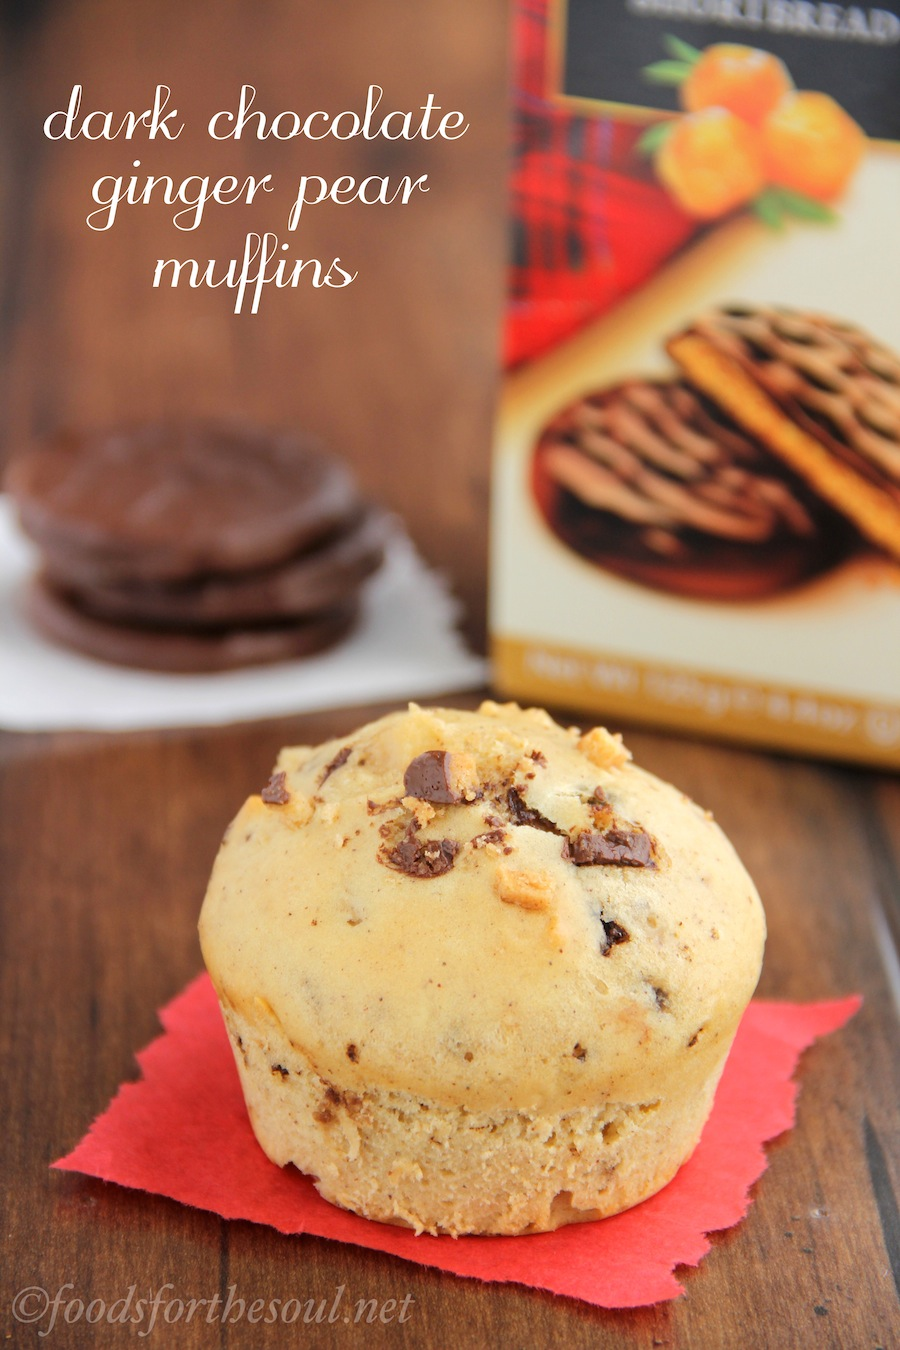 Dark Chocolate Ginger Pear Muffins